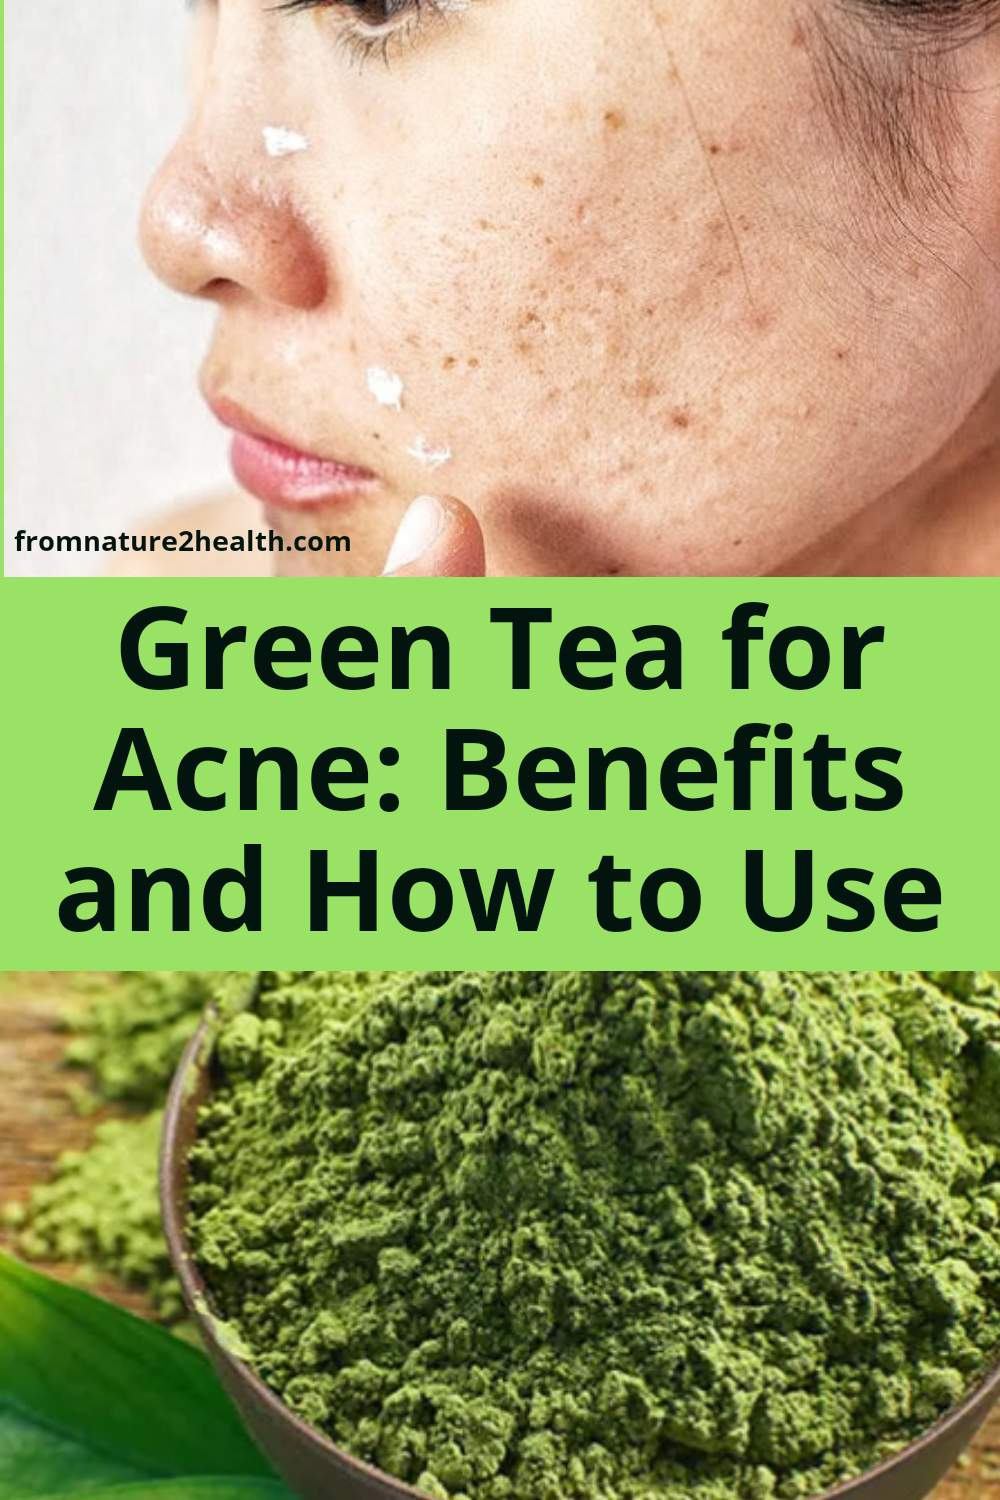 Green Tea for Acne: Benefits and How to Use